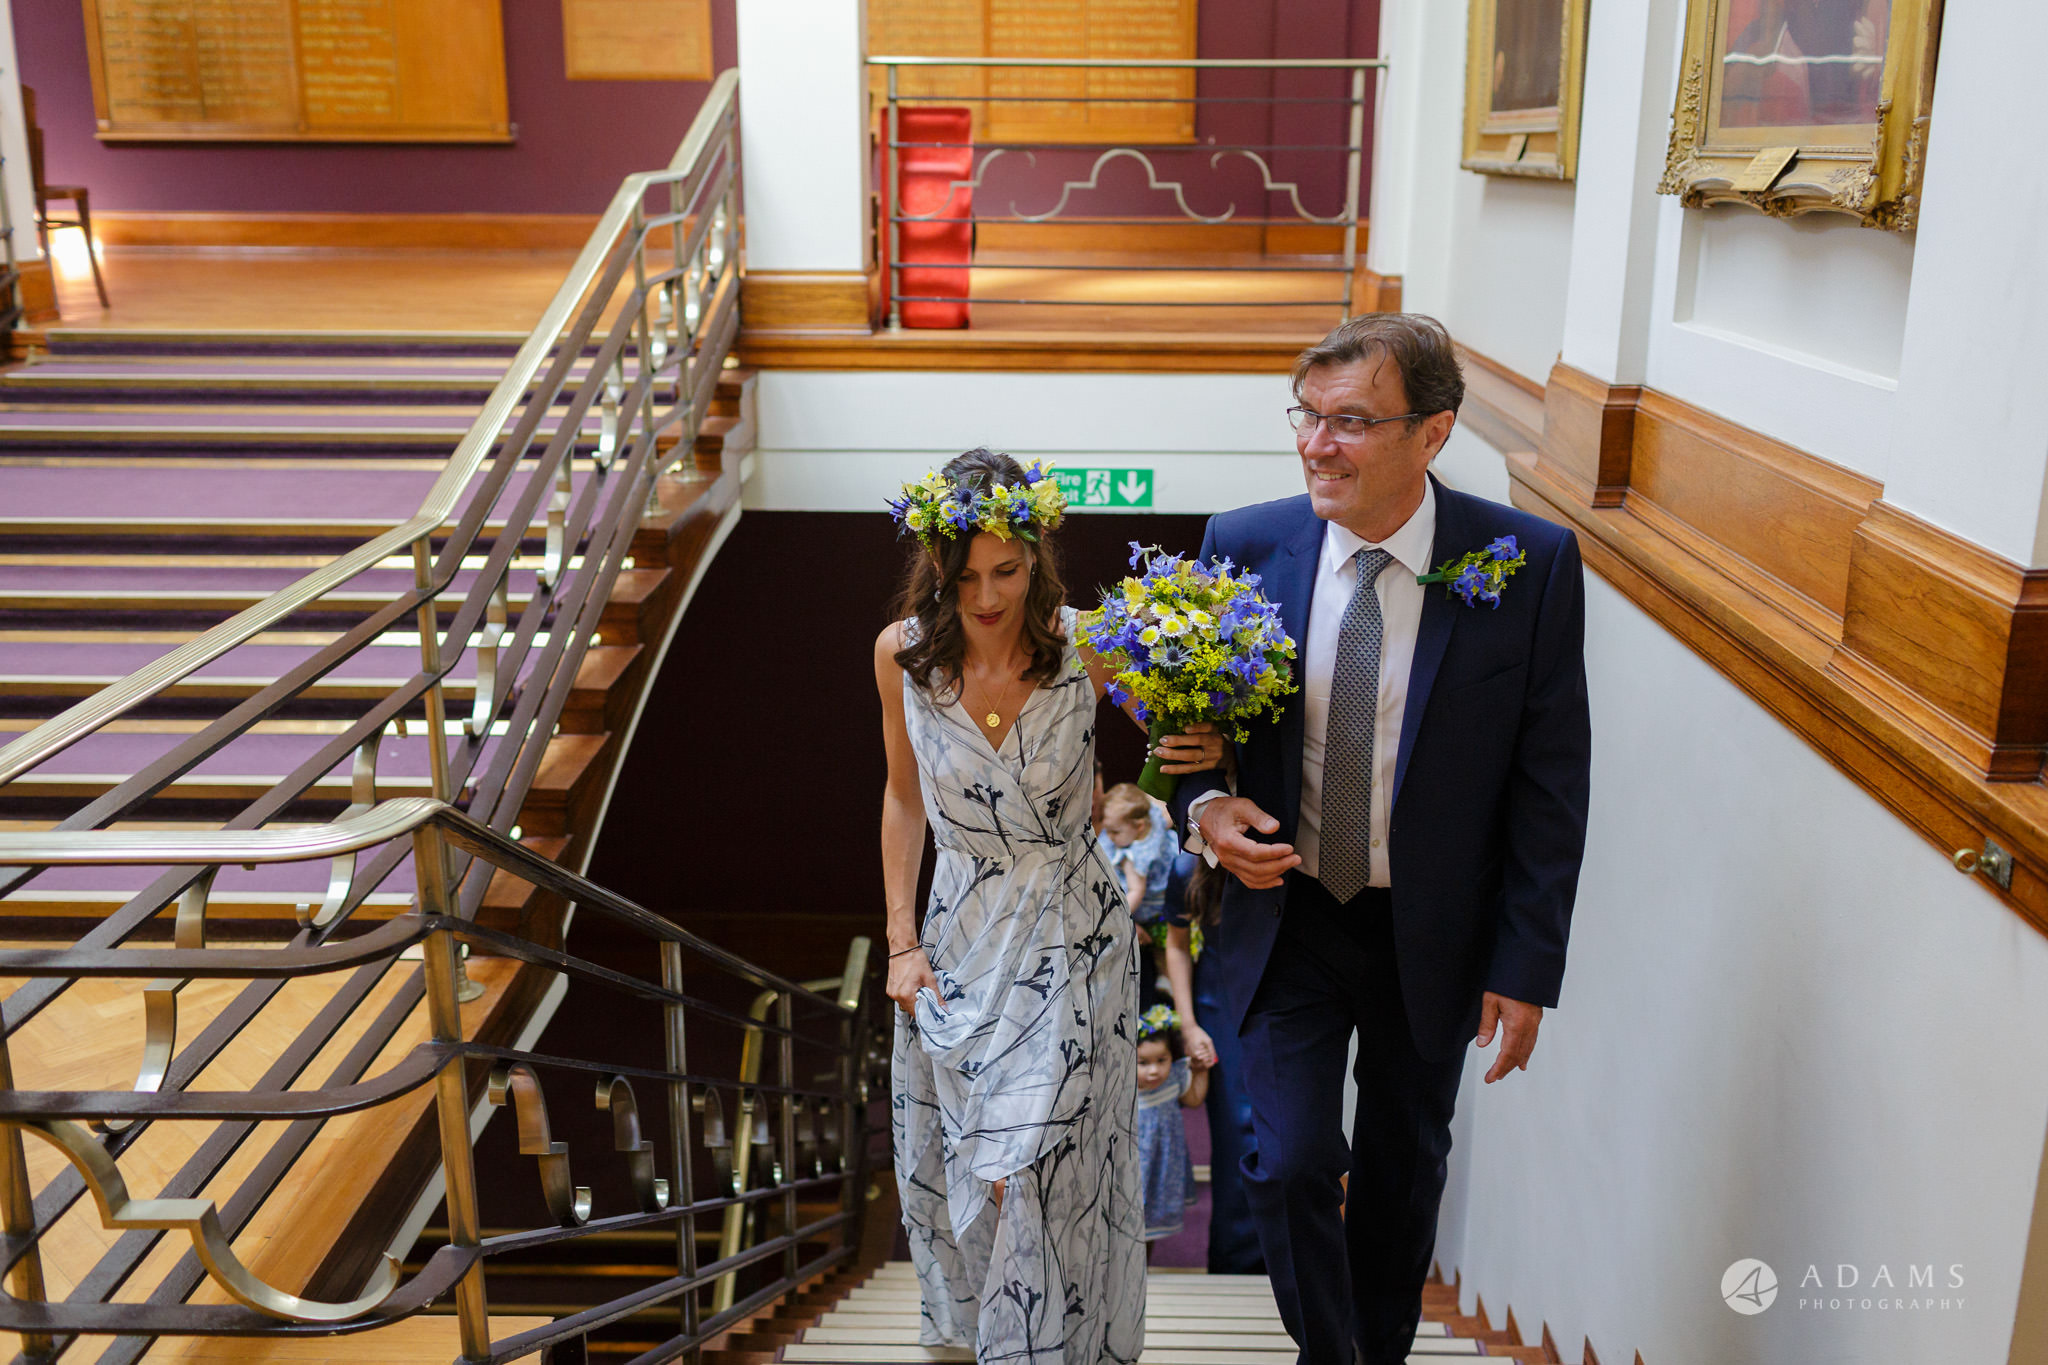 Clissold house wedding bride walking up the stairs with her father